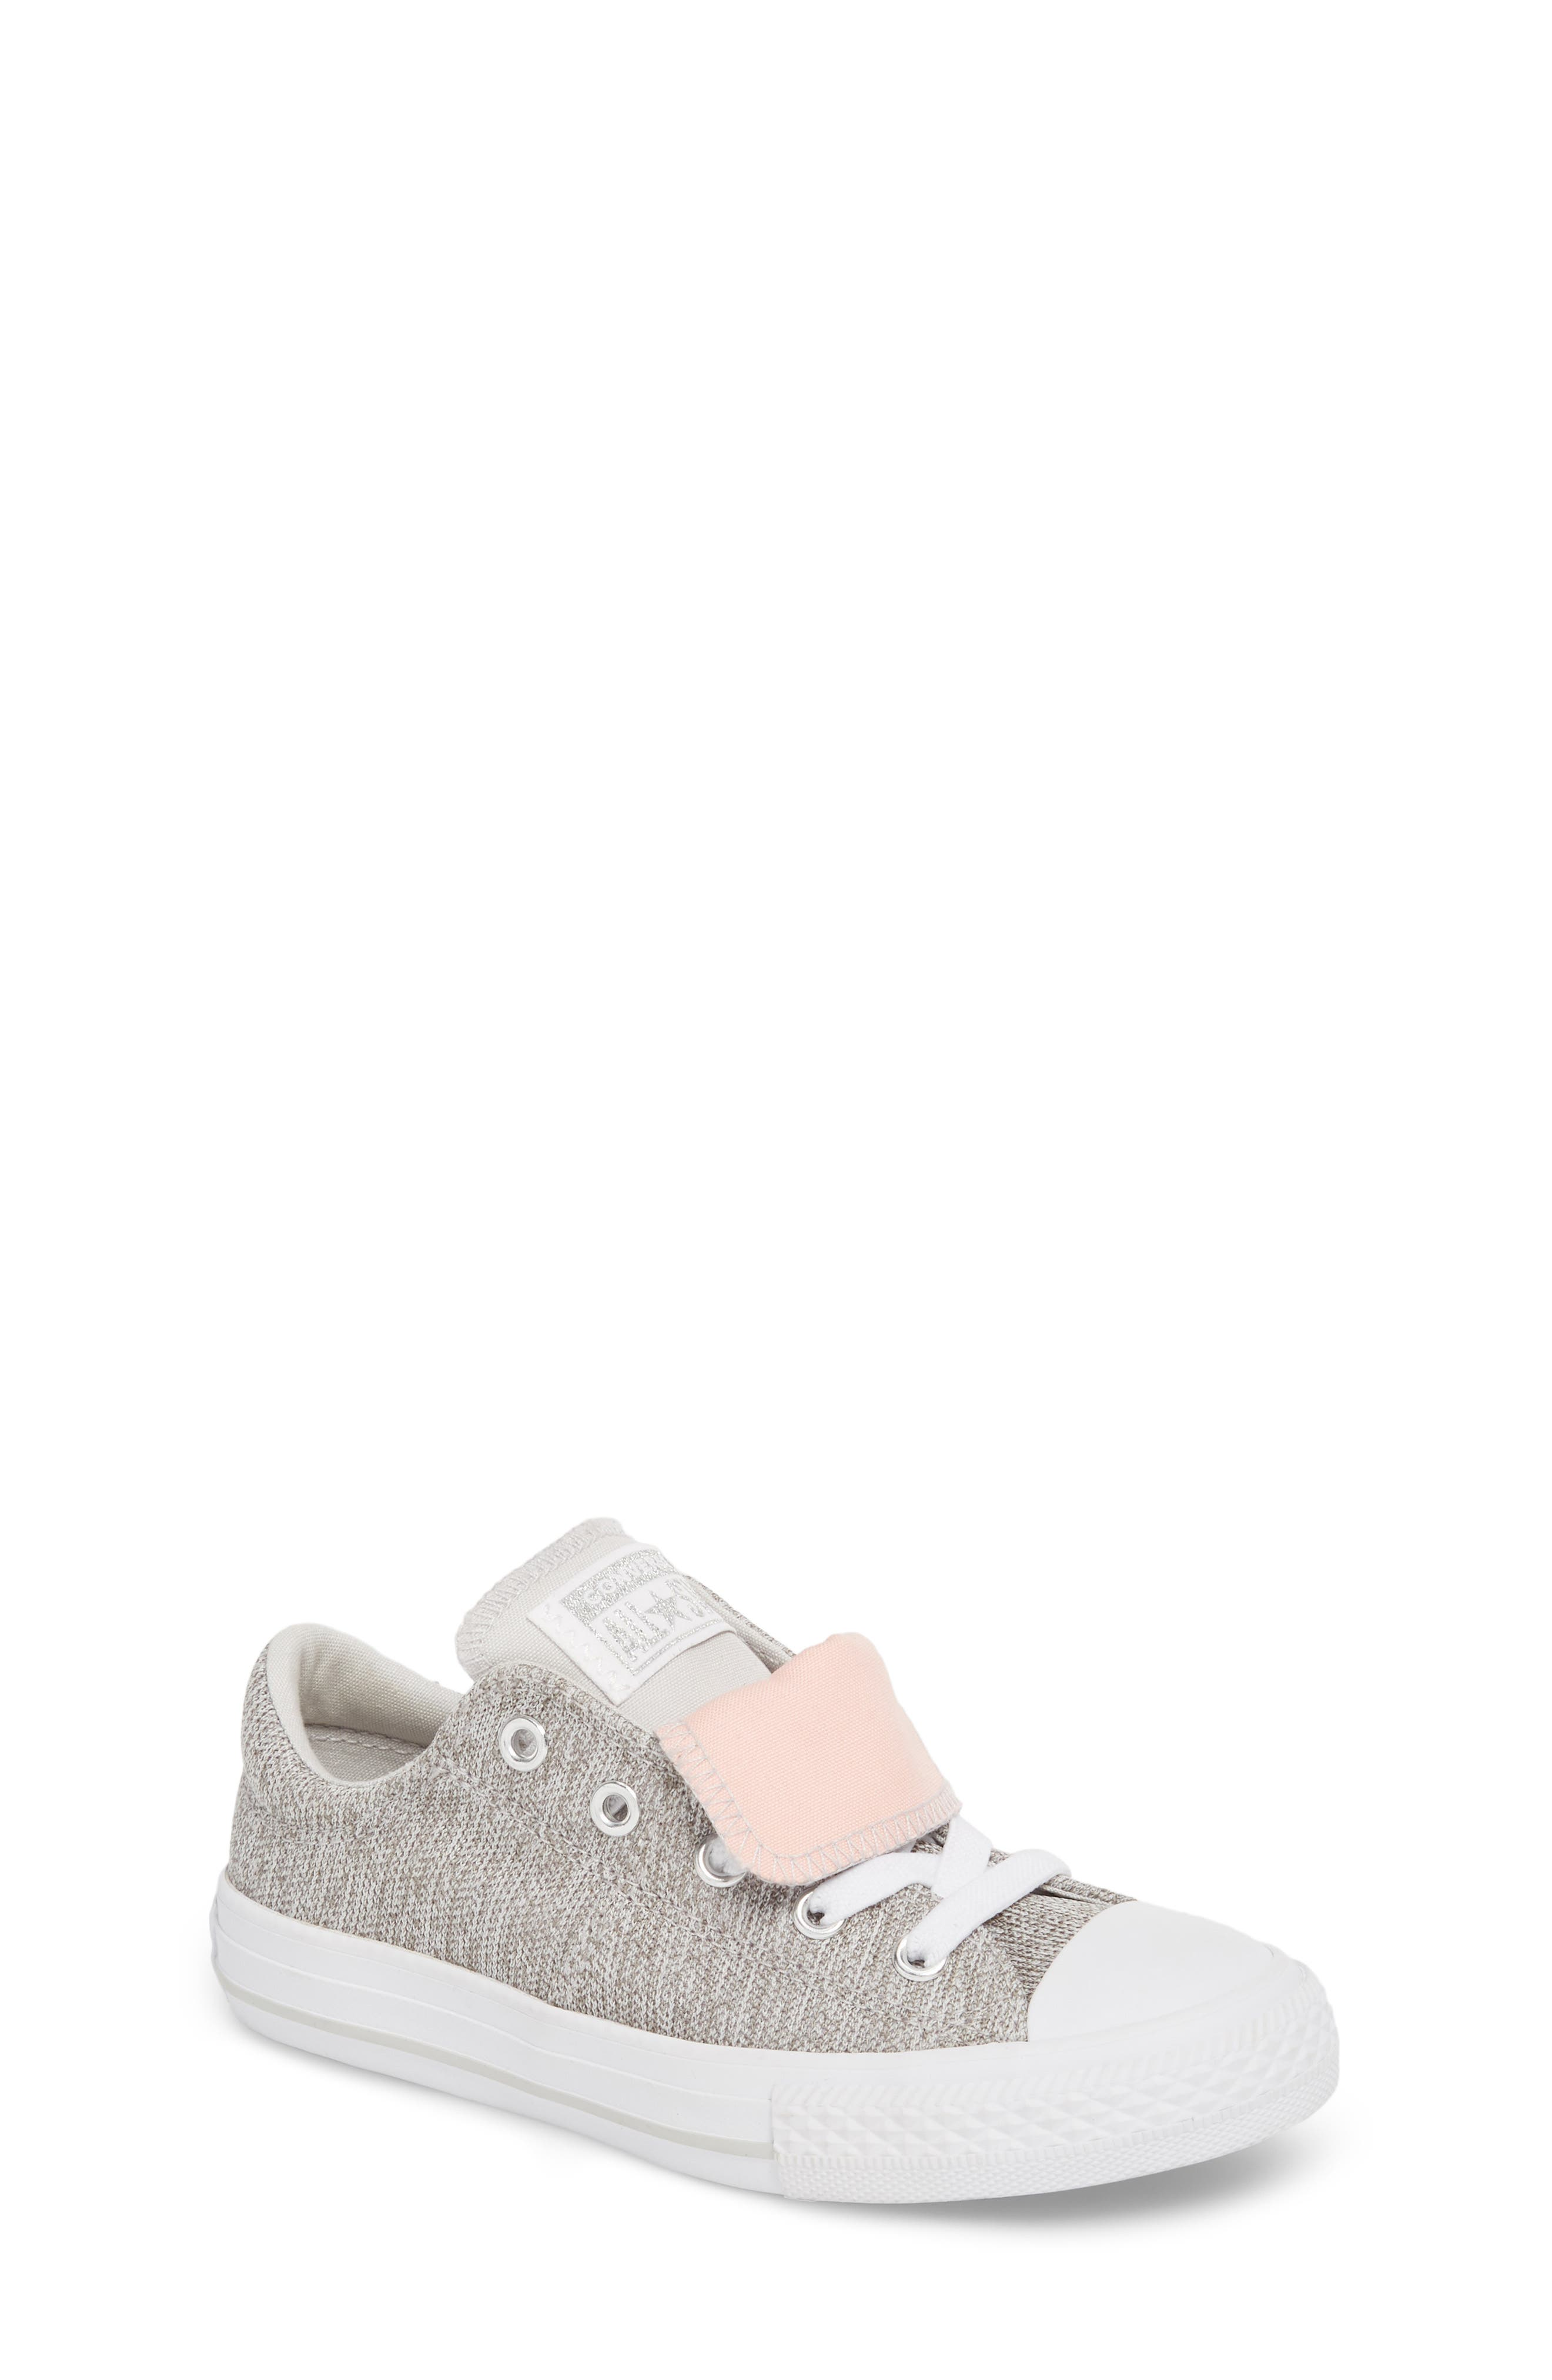 Chuck Taylor<sup>®</sup> All Star<sup>®</sup> Maddie Double Tongue Sneaker,                         Main,                         color, LIGHT GREY